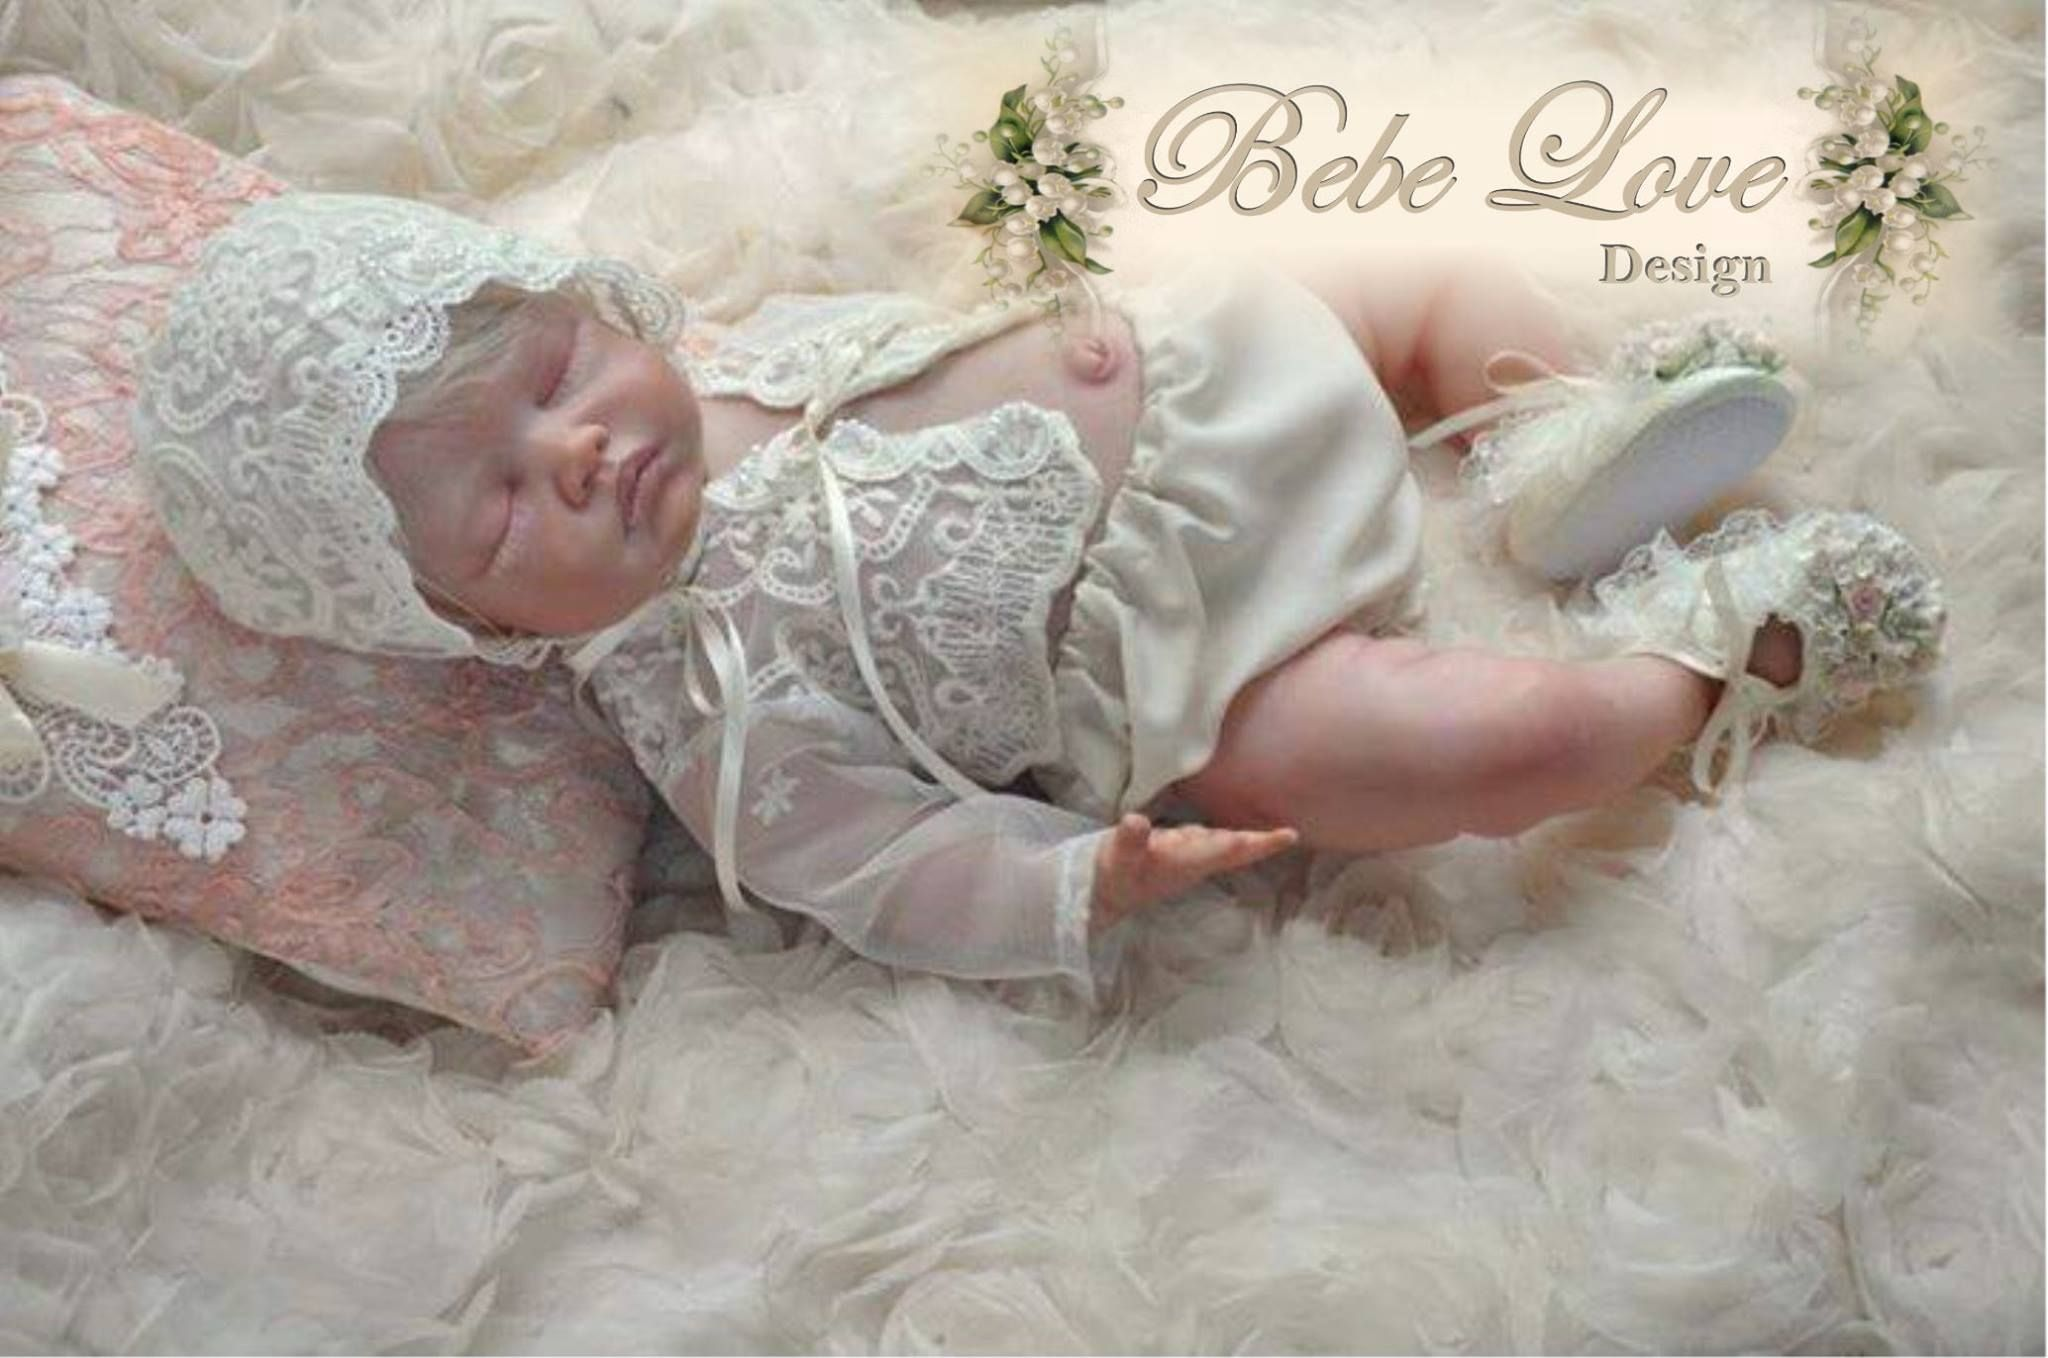 Bebe Love Design by Shauena. Vintage Shabby Chic Baby Clothing